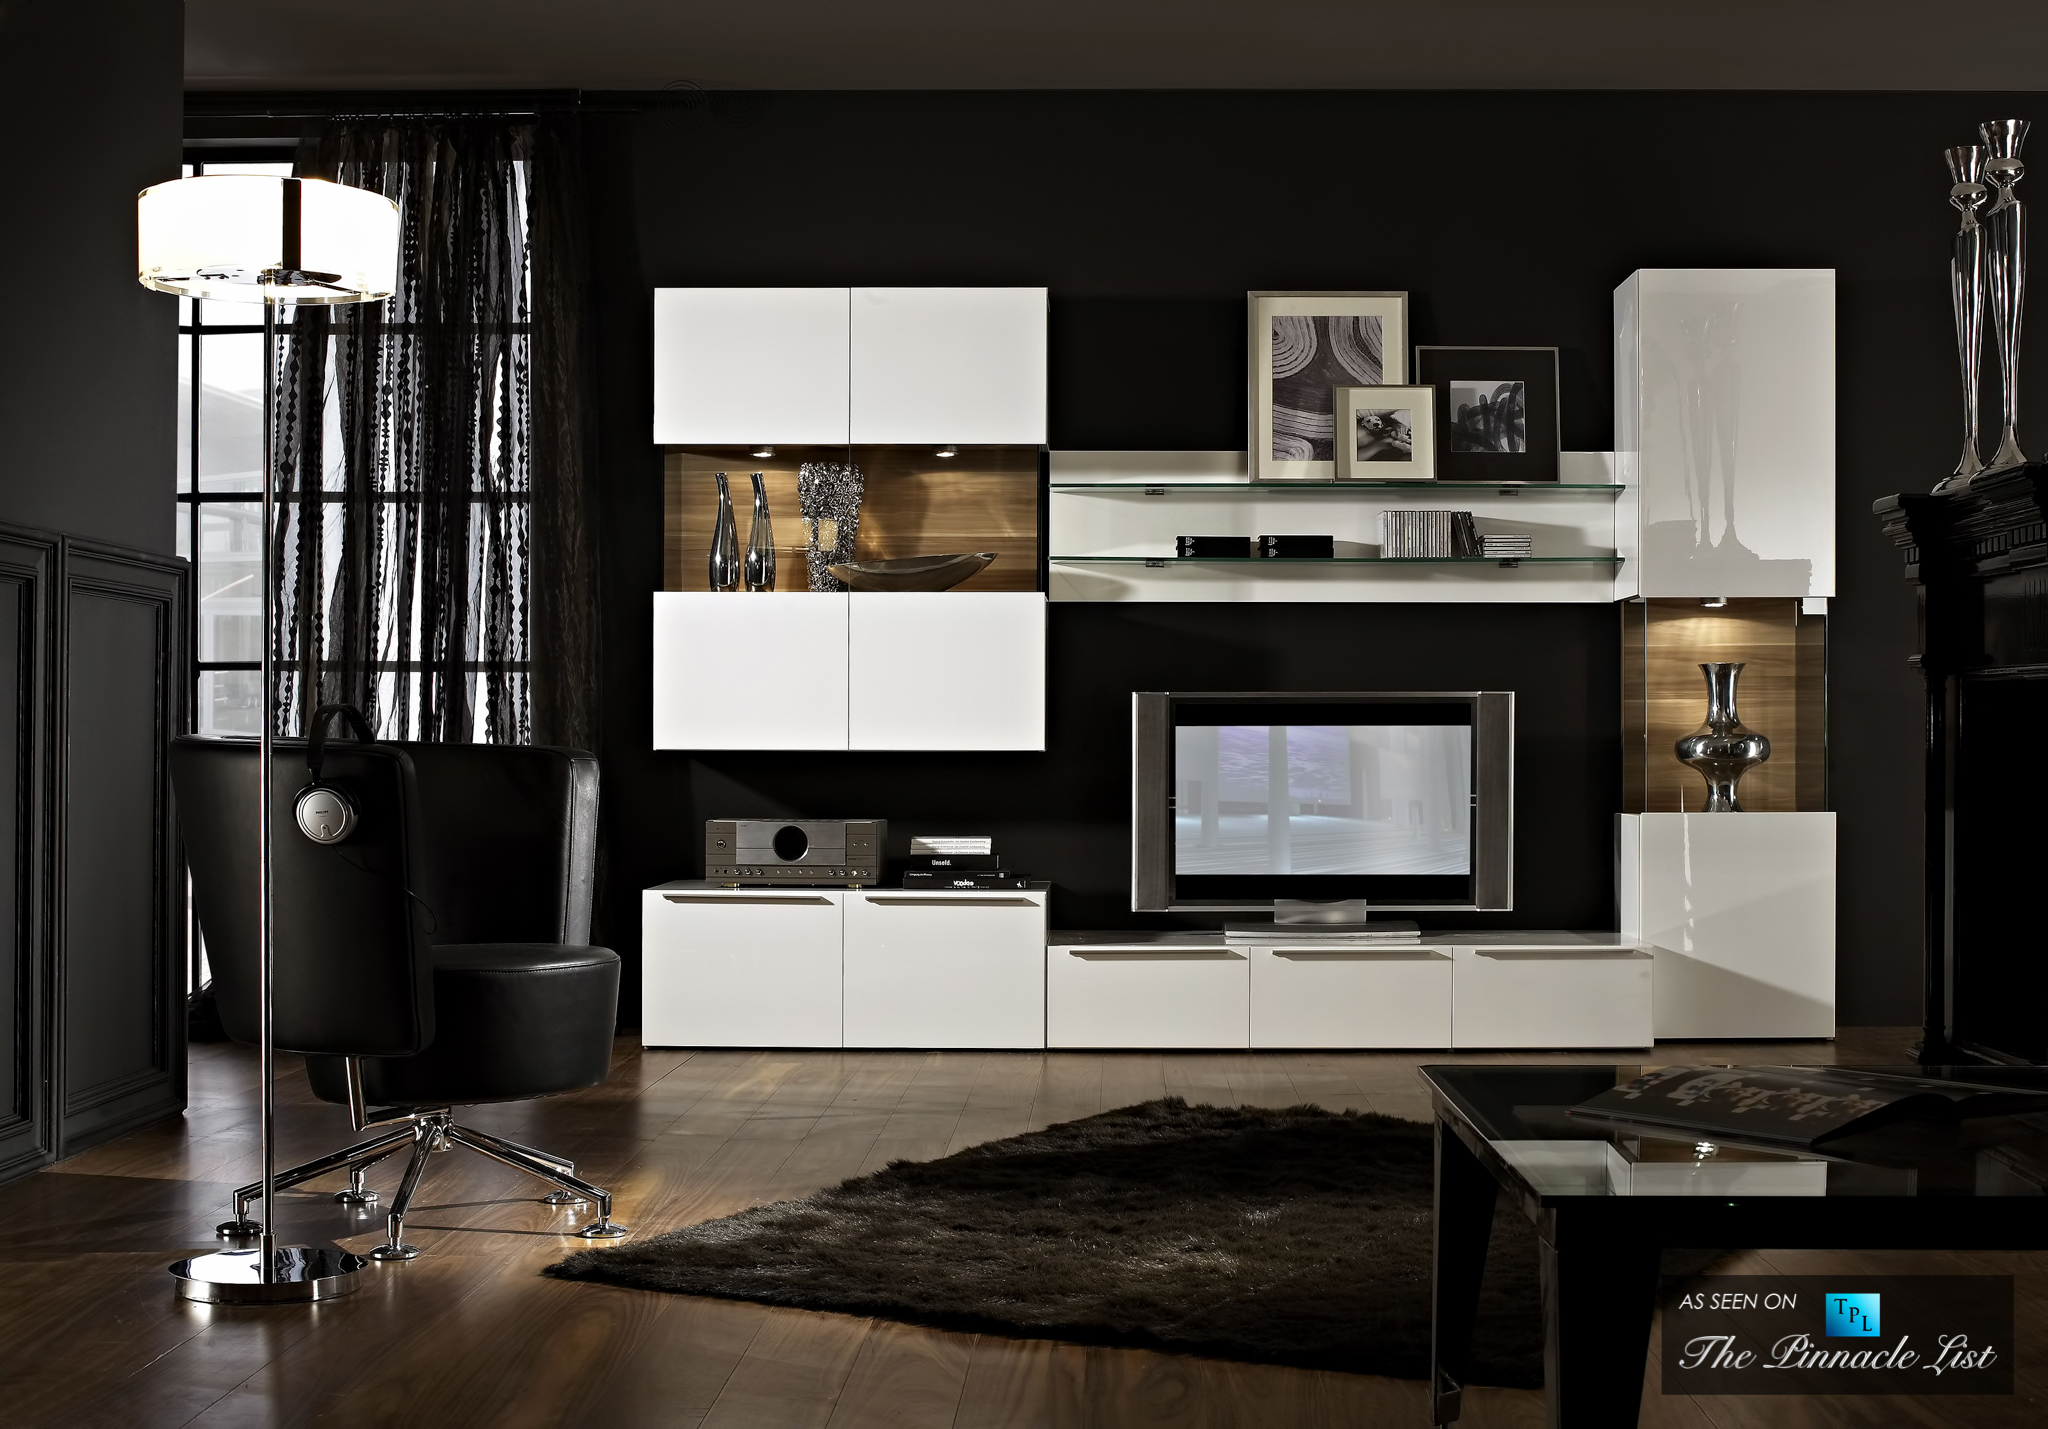 Indoors – Virtuous Beats – Create a Luxurious Acoustic Experience in Your Home